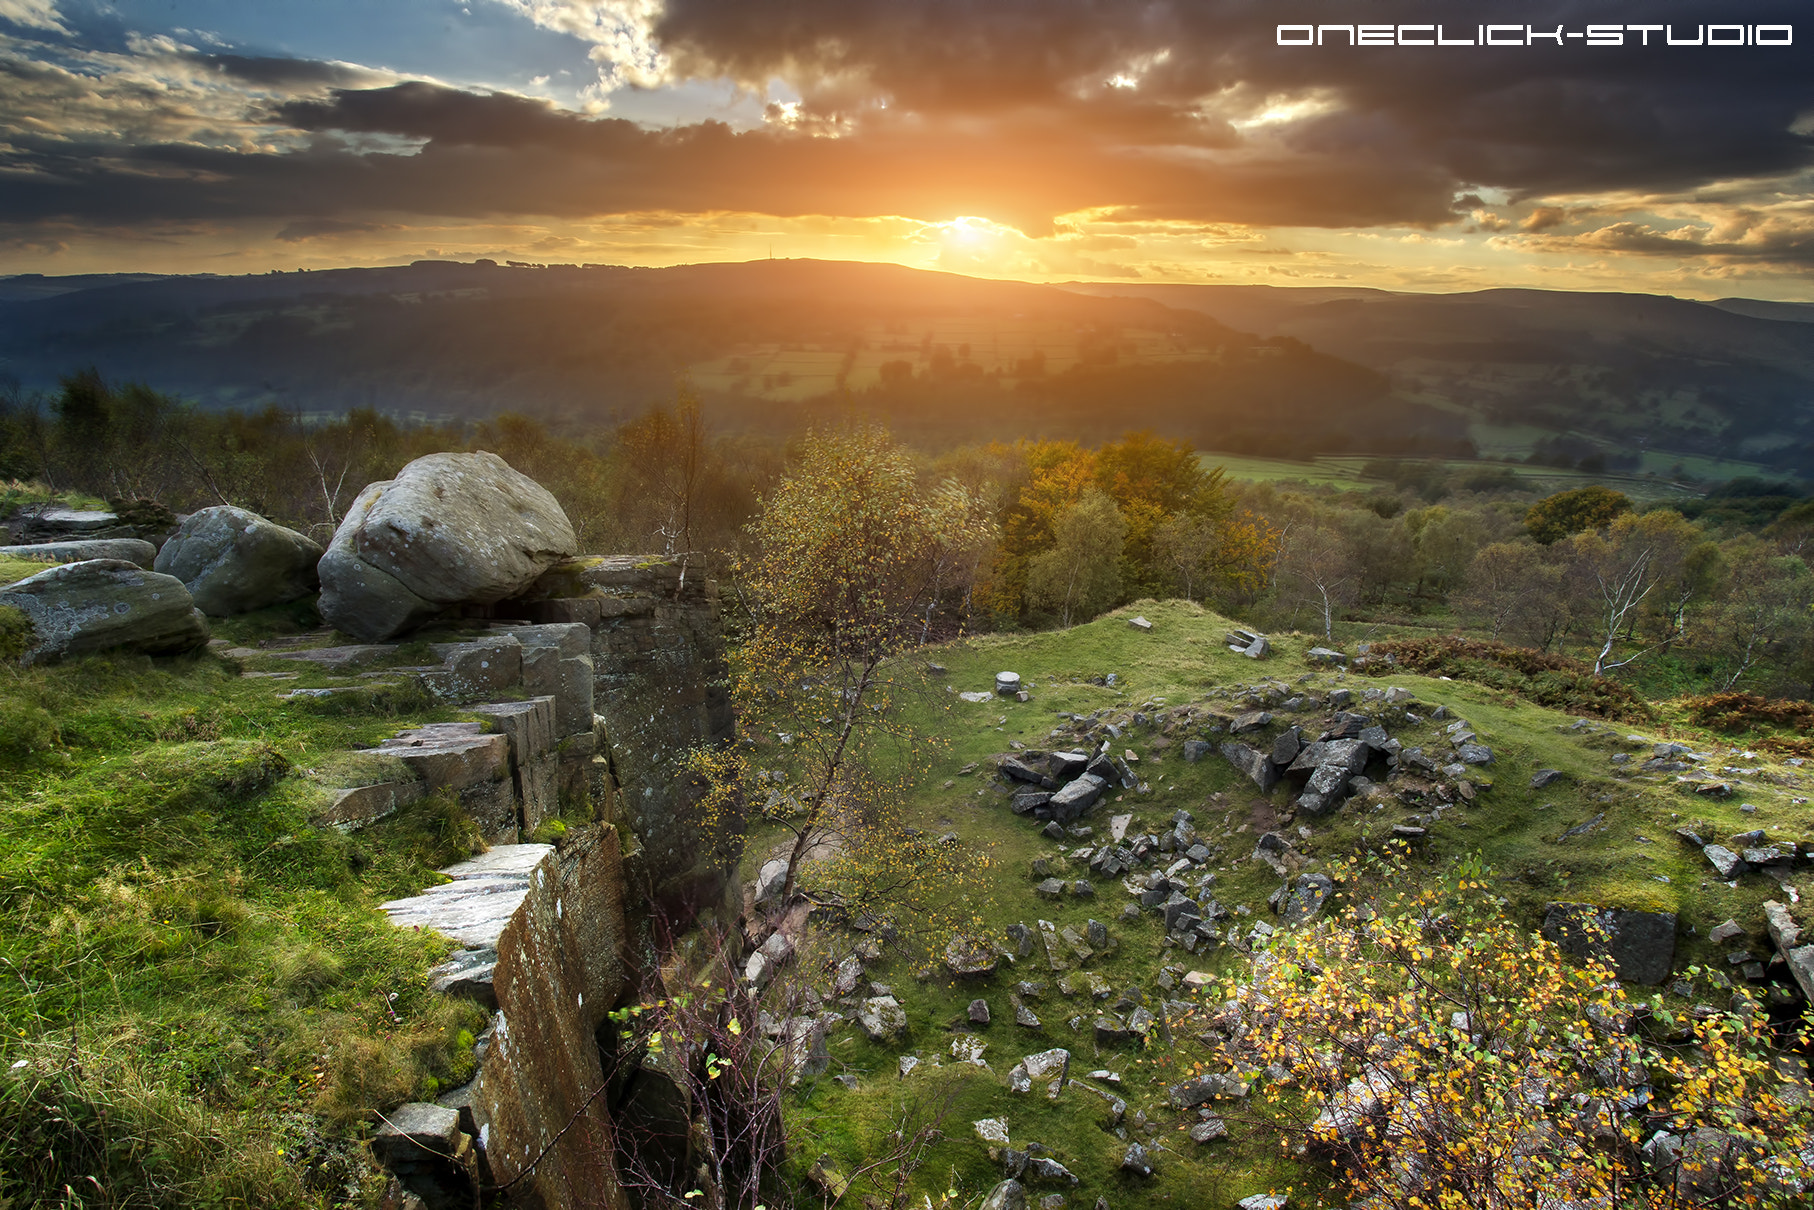 Photograph Derbyshire UK 2012 by Calvin lee on 500px